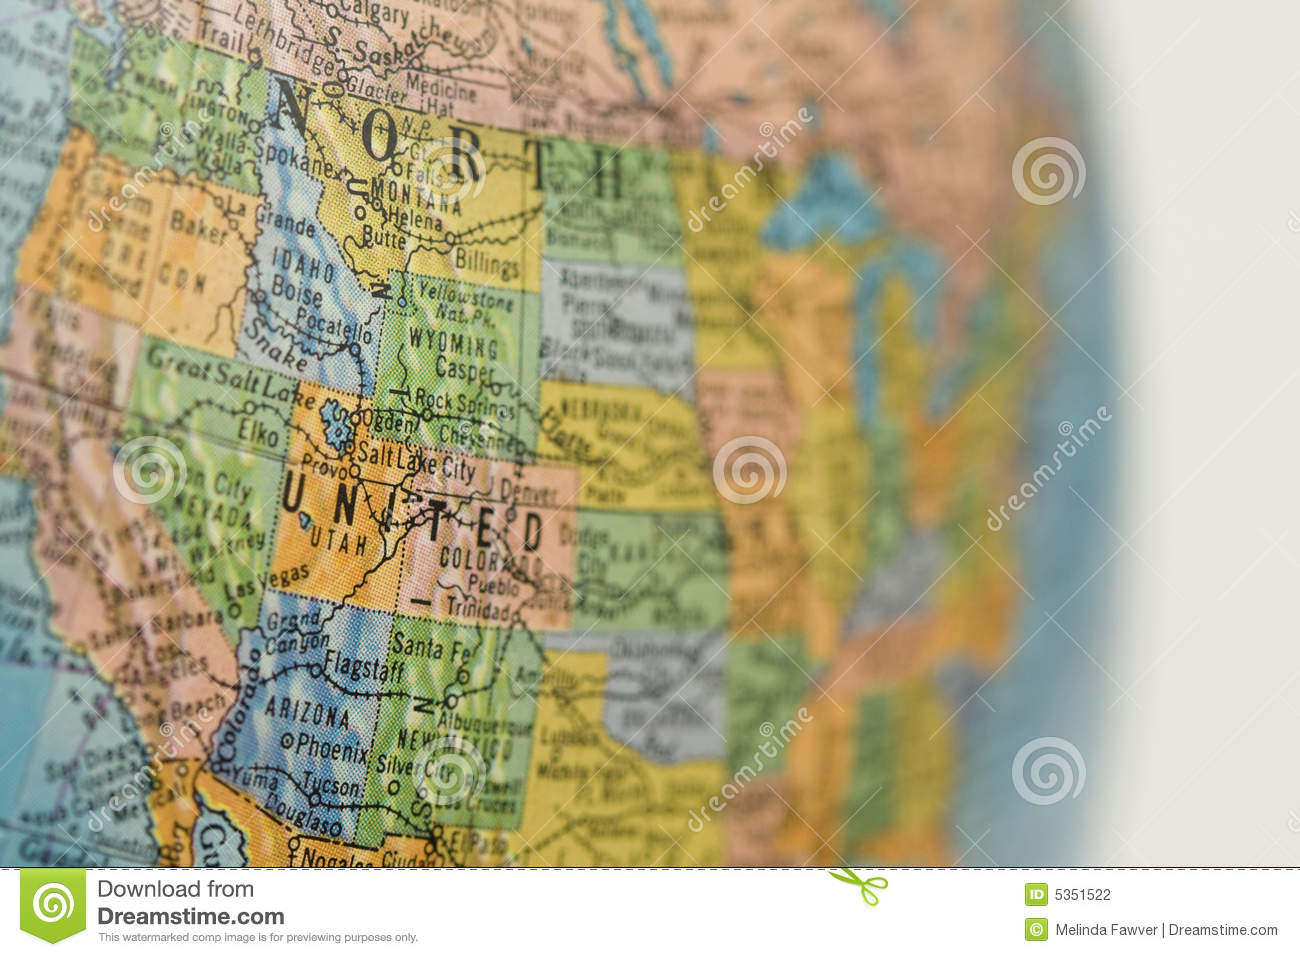 USA Map Globe stock photo. Image of comp, fashioned - 5351522 United States A Map Globe on united states map with rivers and lakes labeled, united states waterfall locations, united states is in north america, ww1 united states map, united states usa travel map, united states cultural symbols, united states sun map, united states in 1790, united states of america news, united states richmond map, modern united states map, united states america map, united states map grey, chaco canyon archaeological site map, united states global map, large united states highway map, united states phoenix map, united states space view, silver burdett and ginn inc. united states map, united states capes,